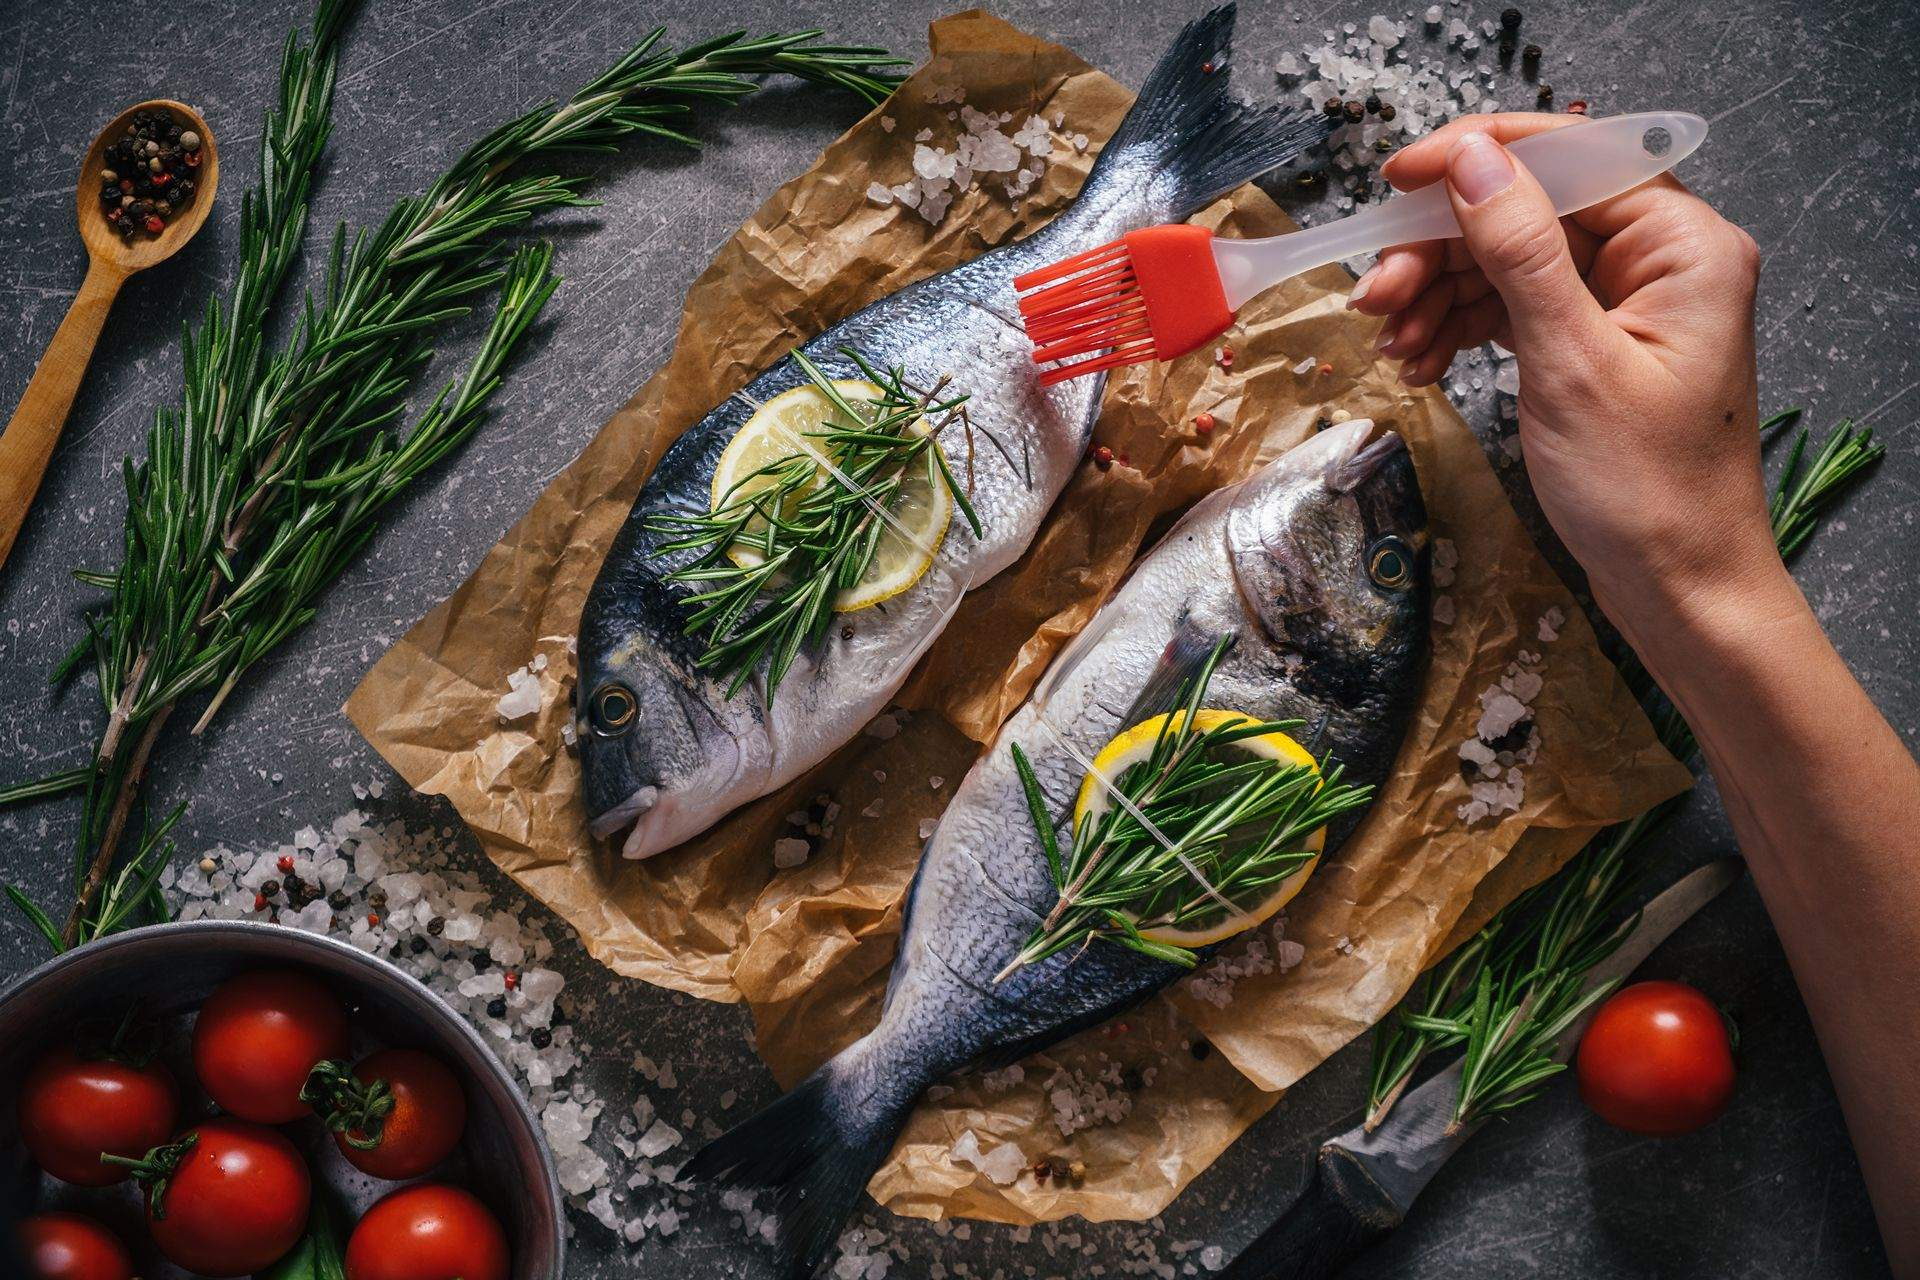 Preparing seafood fish for cooking on grill. Dorado fish with aromatic herbs and vegetables on rustic wooden board and dark background, top view